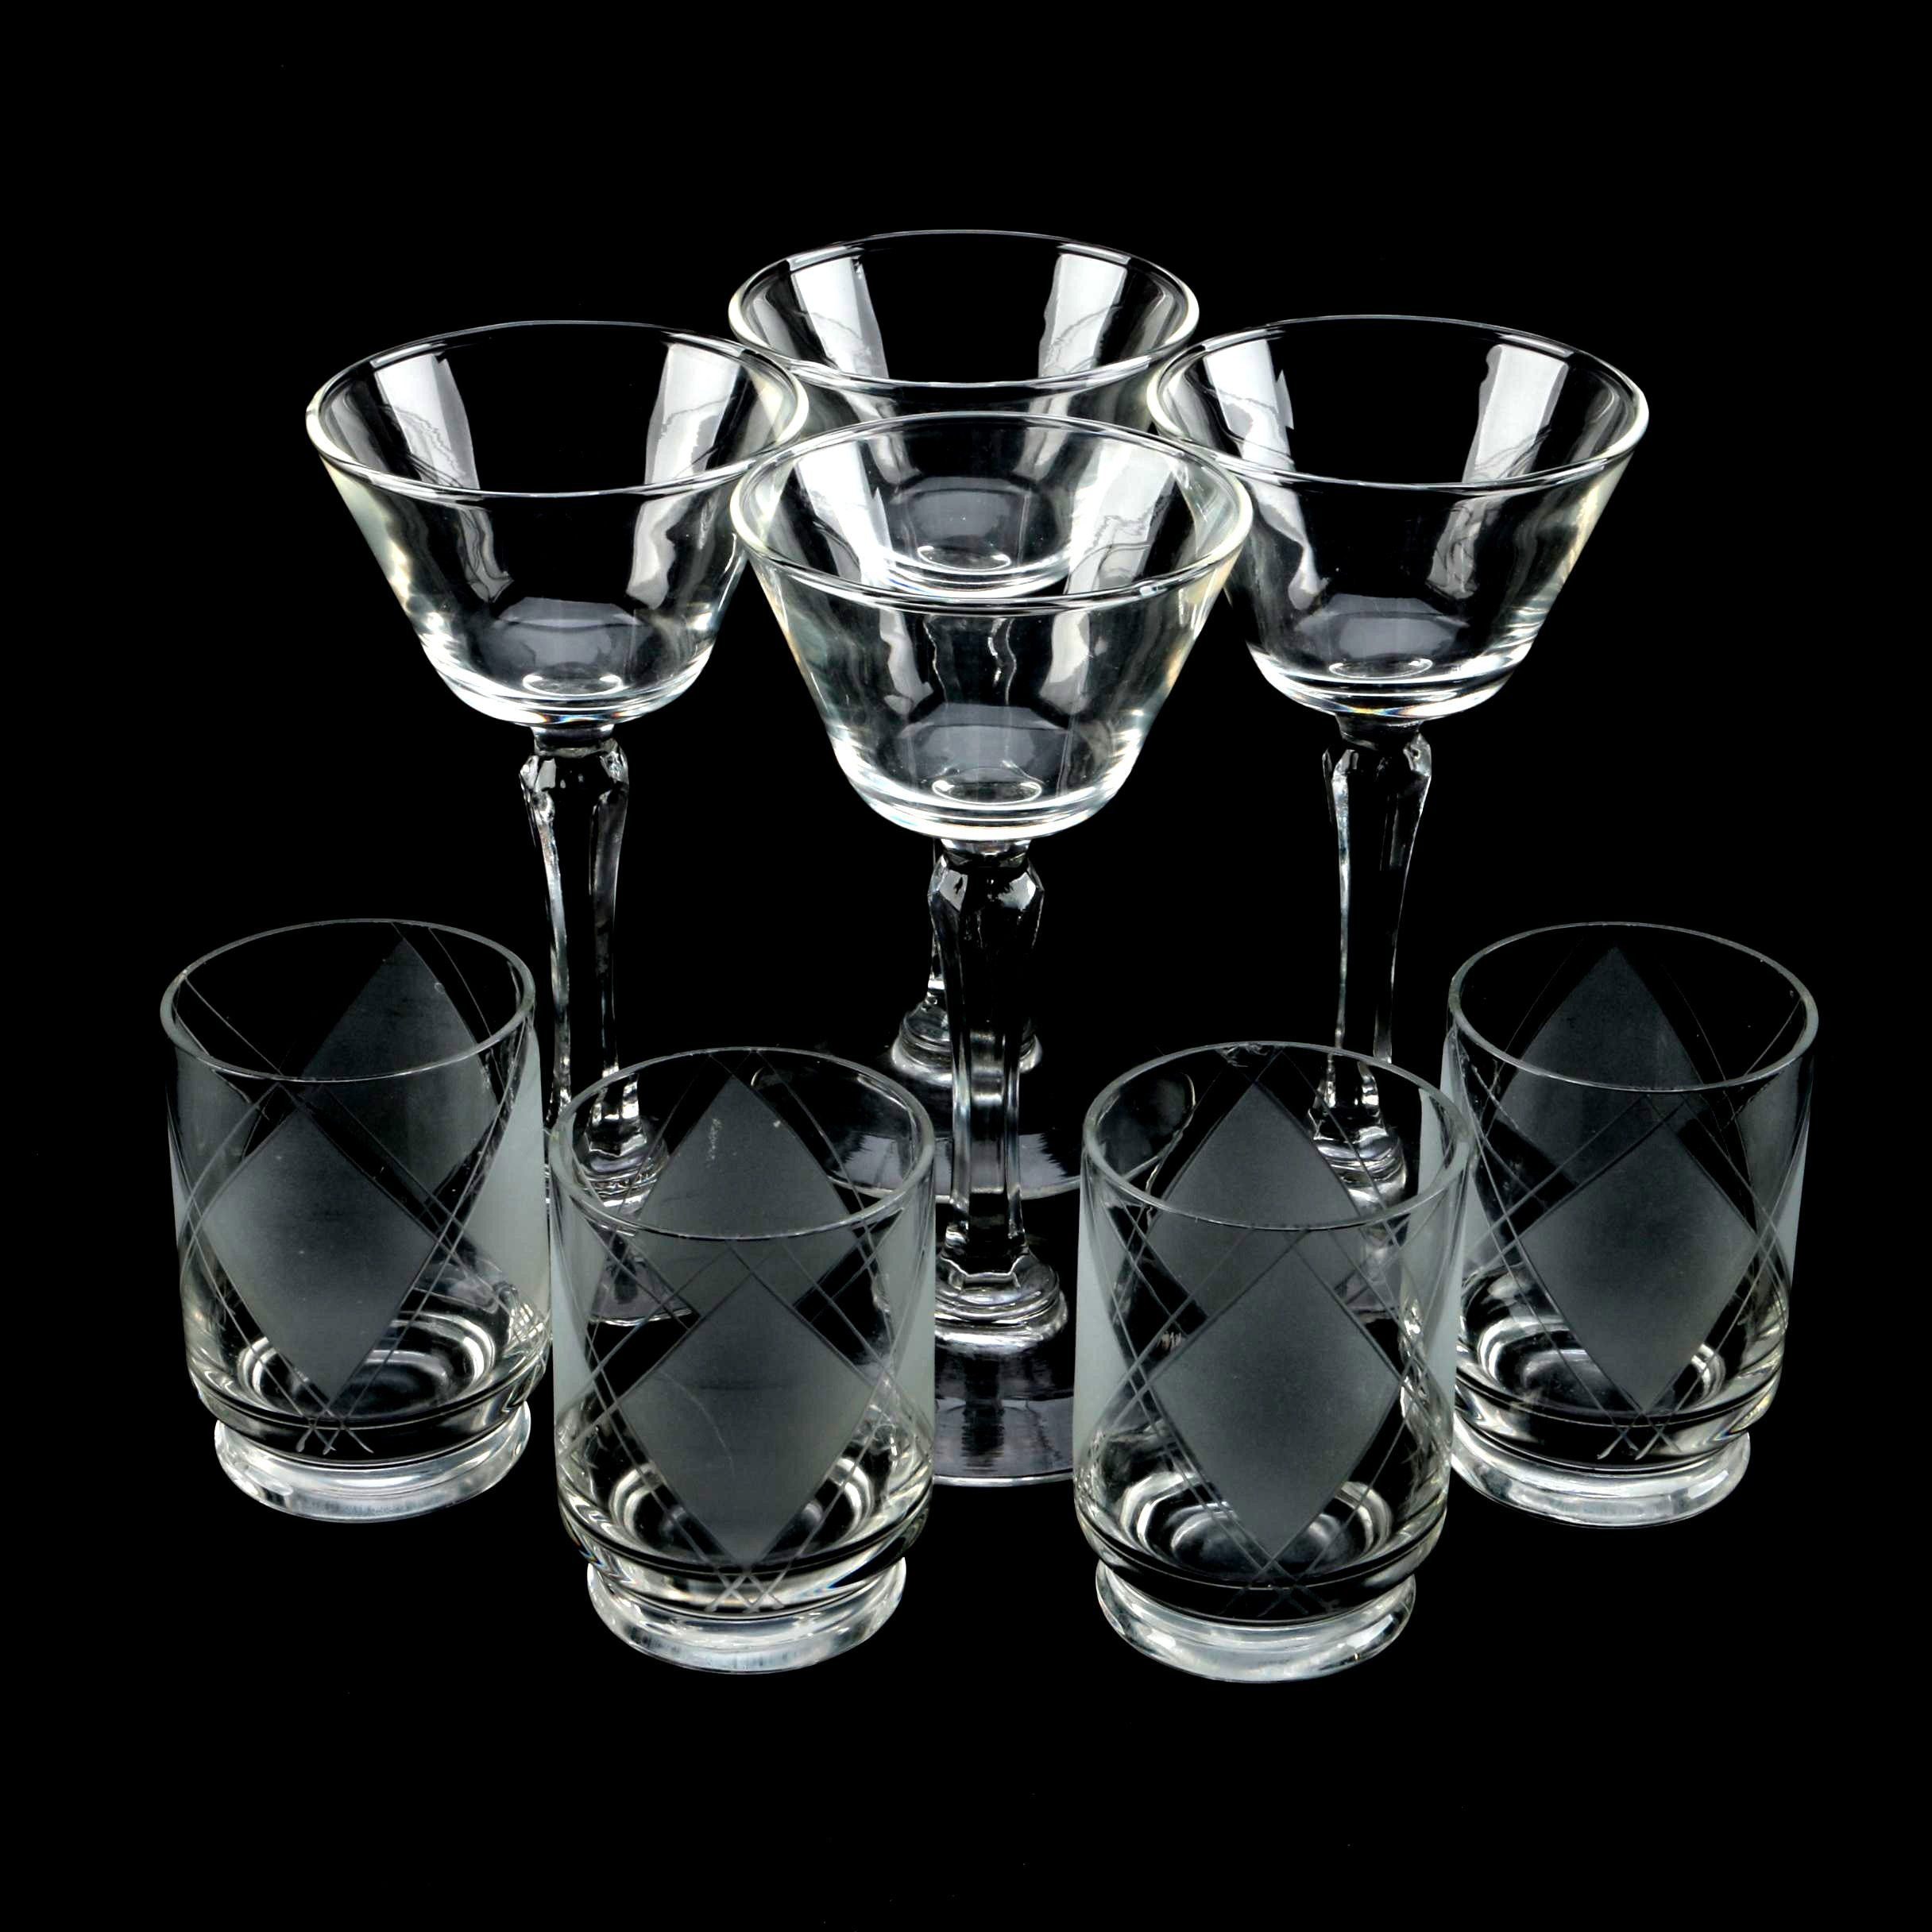 Champagne and Tumbler Glasses